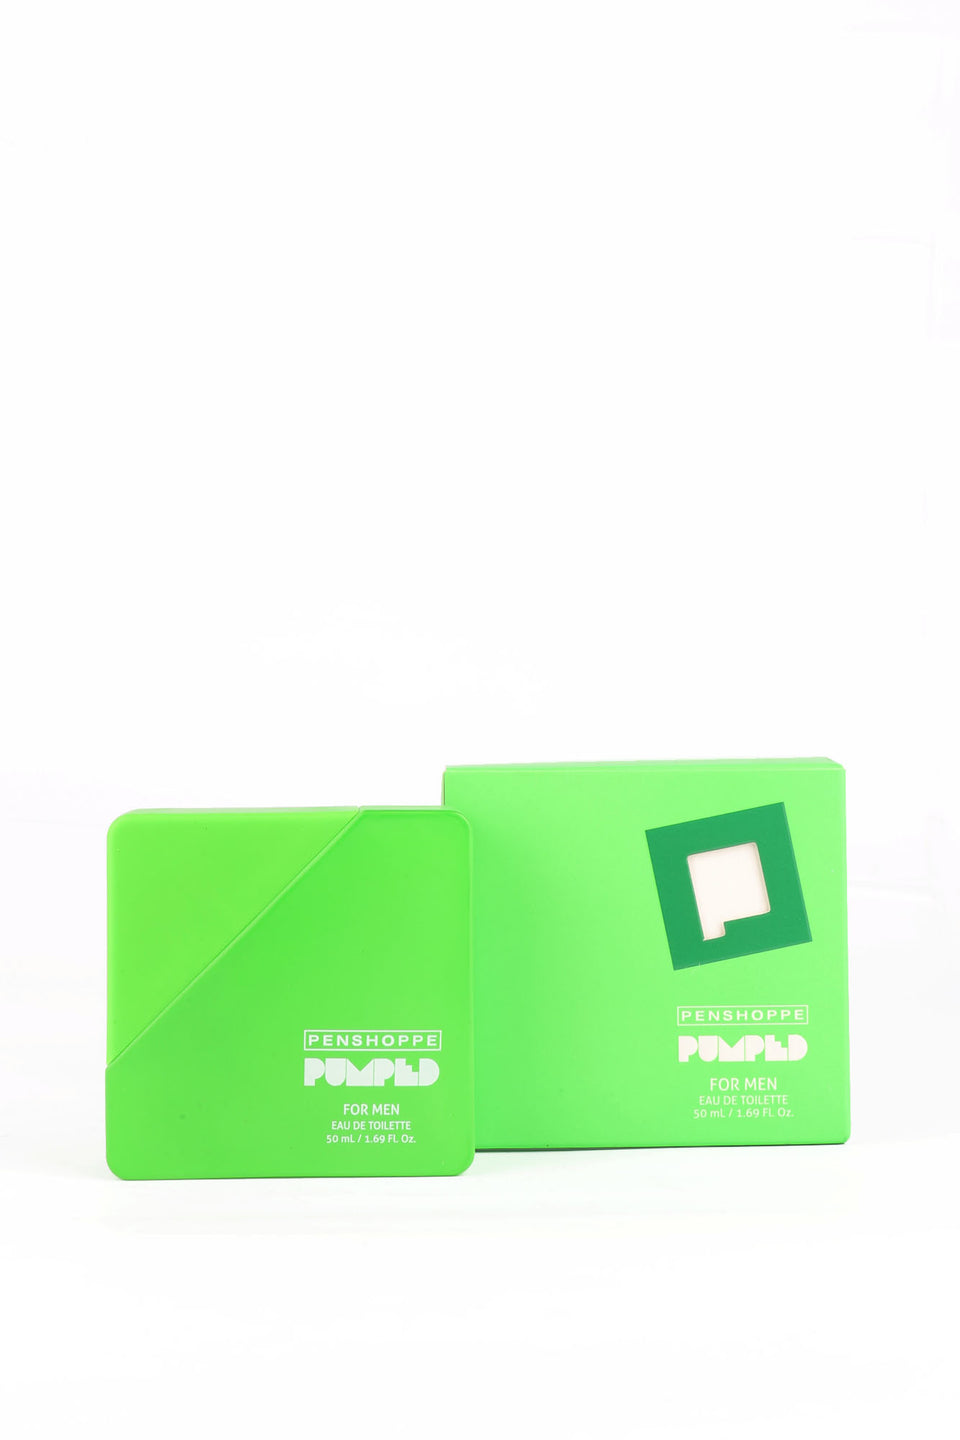 Penshoppe Pumped Green Eau De Toilette For Men 50ML